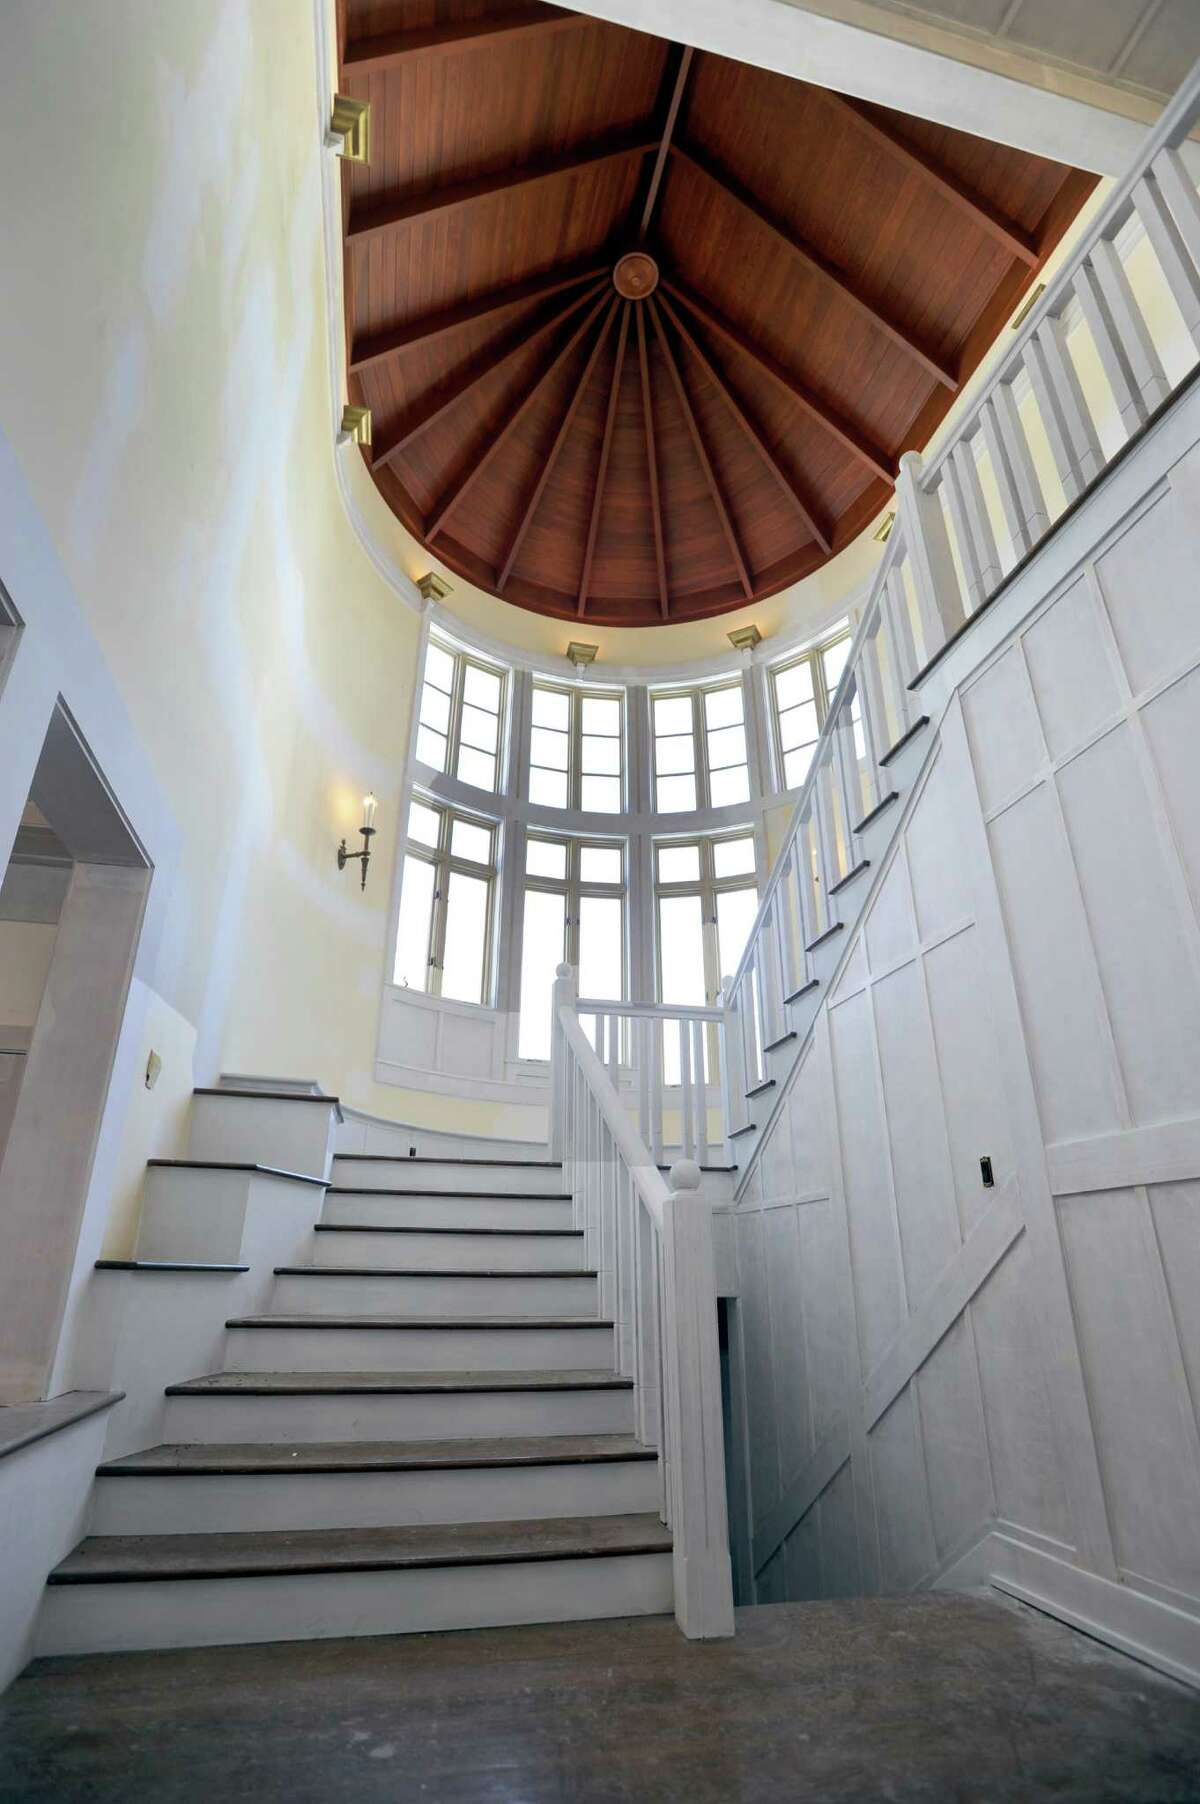 This photo shows the main staircase leading upstairs in an estate on Giles Road in Redding, Conn. which is on the market for $19,500 million. The 19,000 square foot home includes grounds with more than 300 acres and is undergoing extensive undating, Thursday, March 12, 2015.